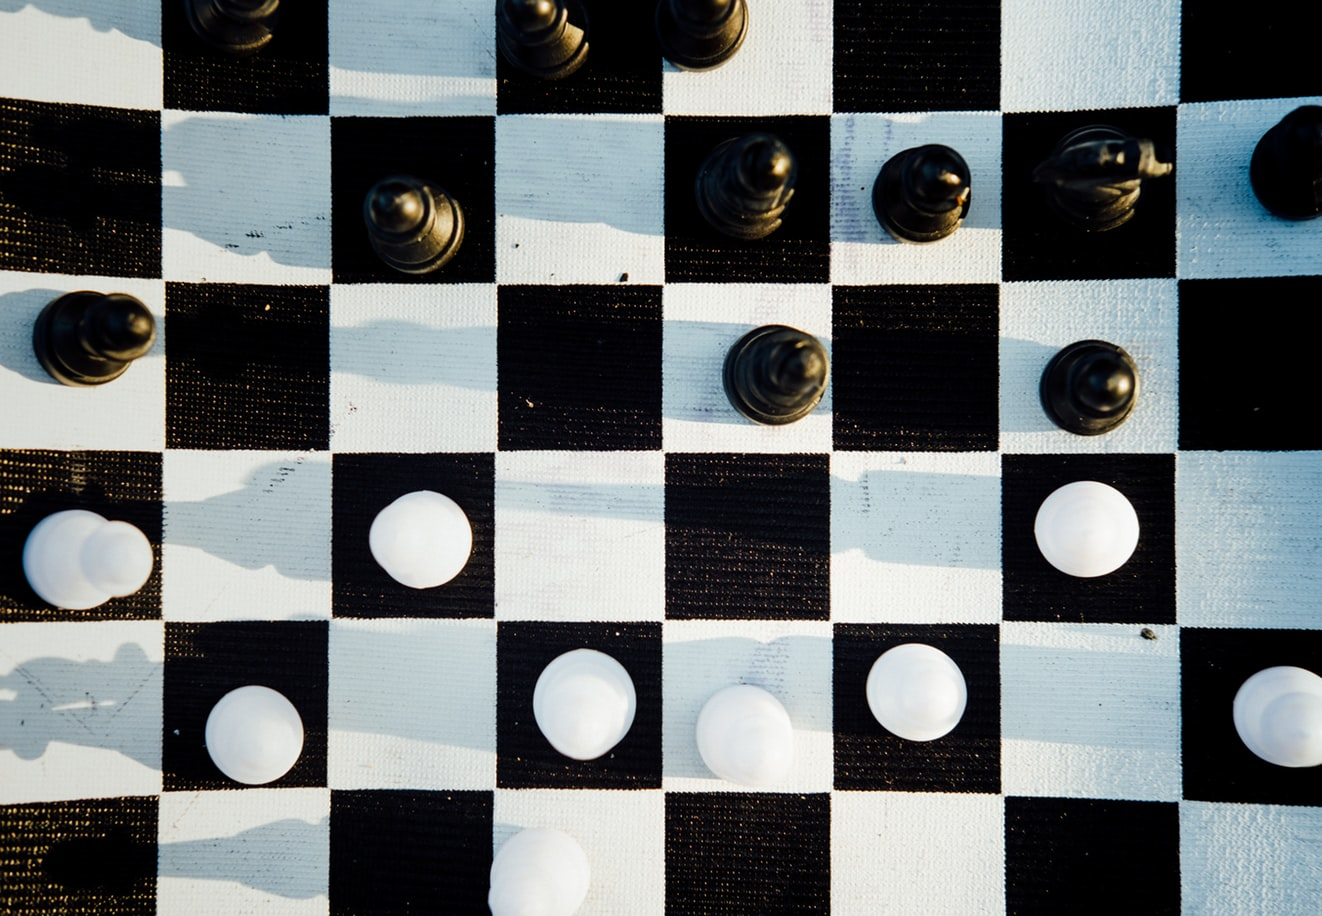 Chess image as a metaphor for market competition and customer research